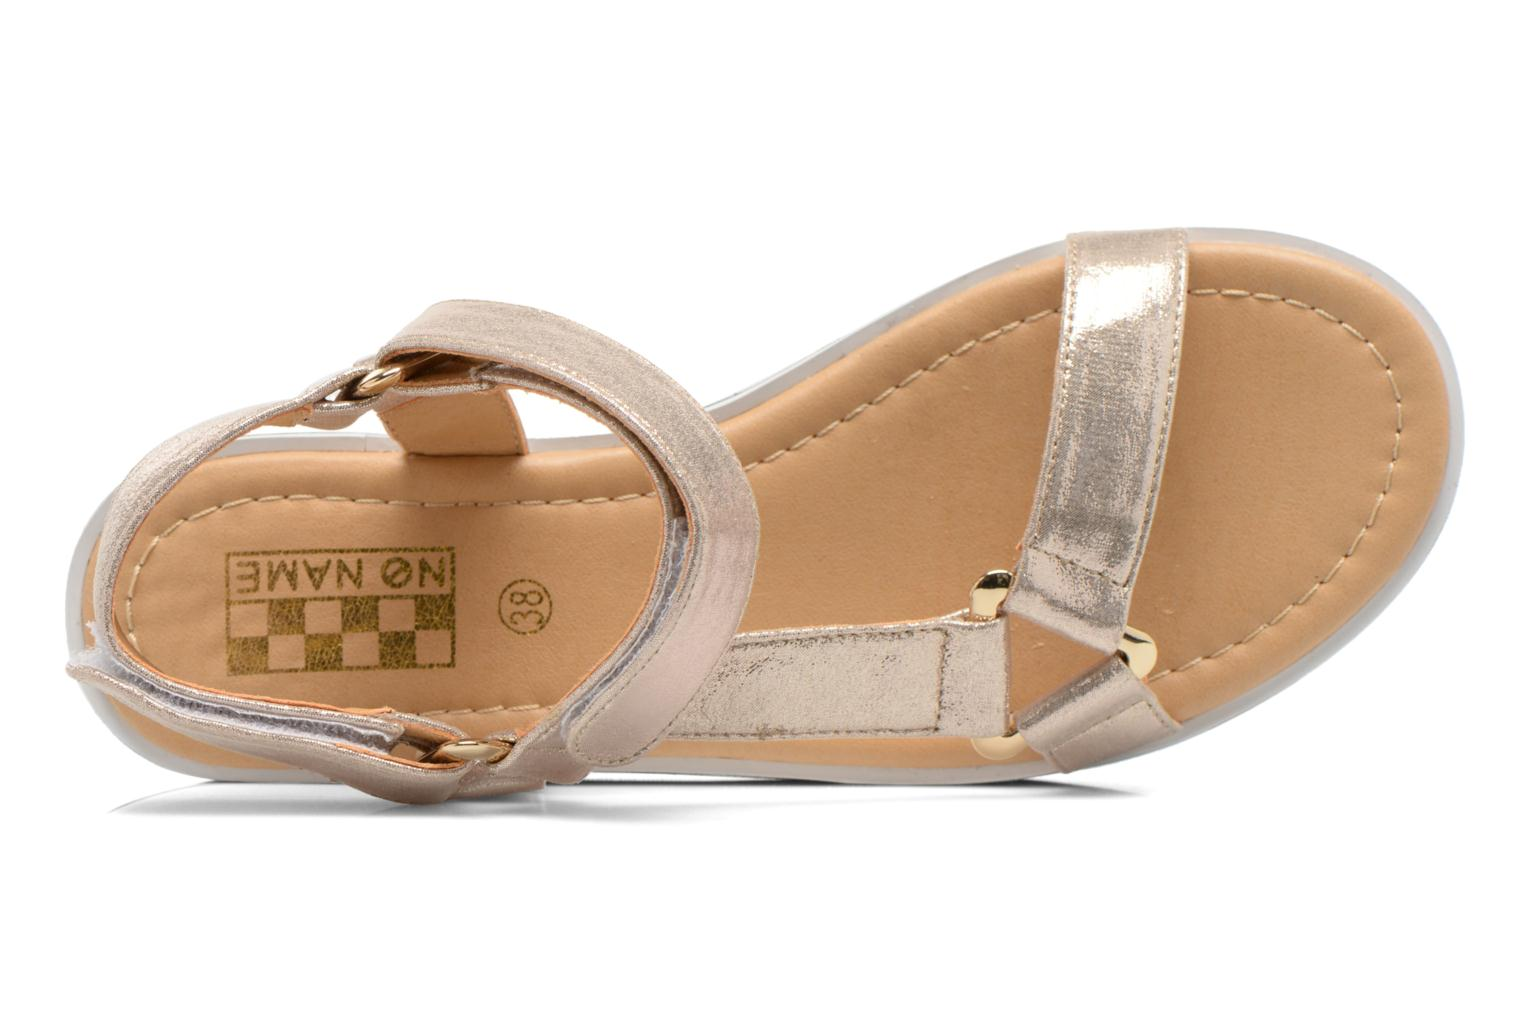 Bhama Sandal Buzz Gold